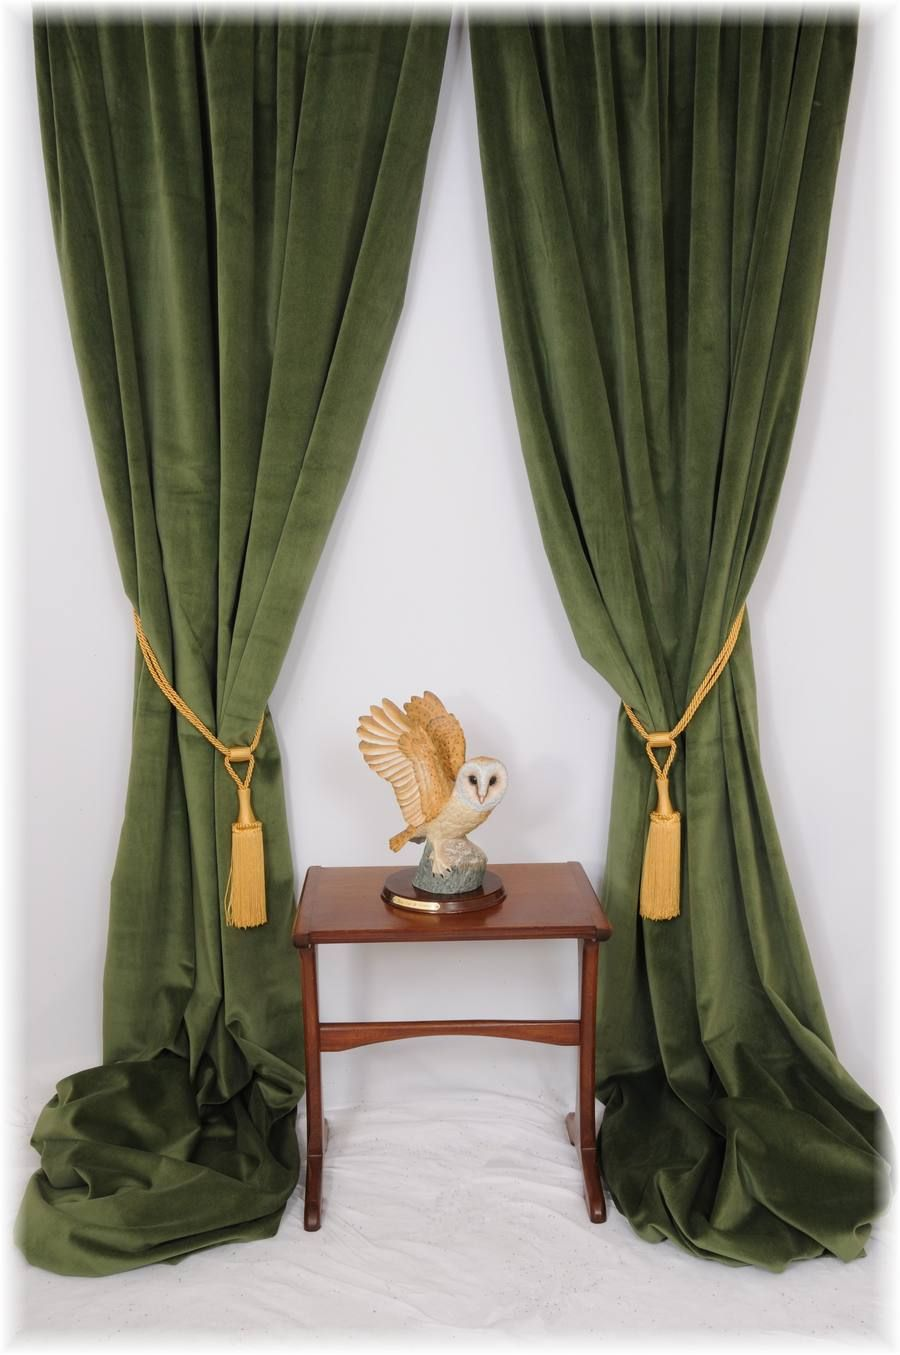 Design Velvet Curtains superb forestspruce green velvet curtains bespoke service all sizes mtm